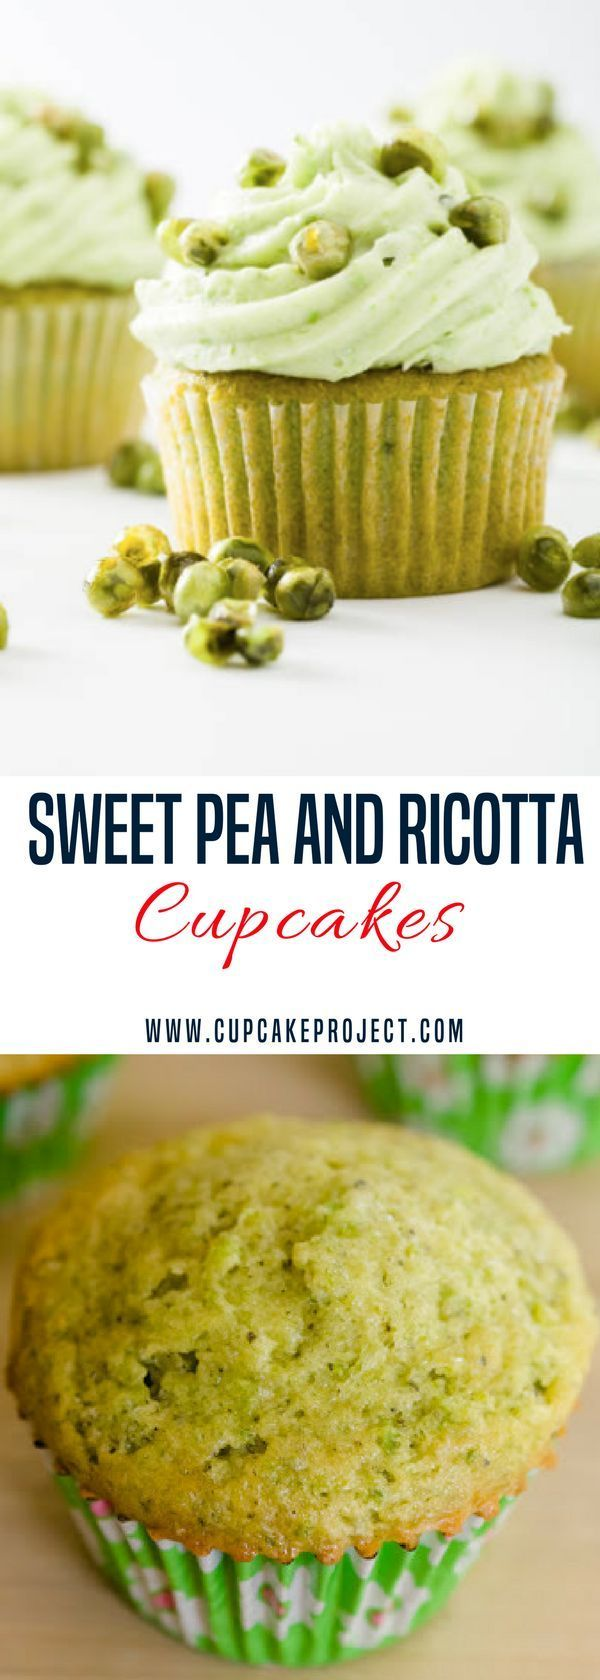 Looking for easy cupcakes recipes?  This Sweet Pea Cupcake Recipe is light and sweet topped with a sweet pea cream cheese frosting and candied peas. More easy and from scratch baking recipes from #CupcakeProject #food #dessert